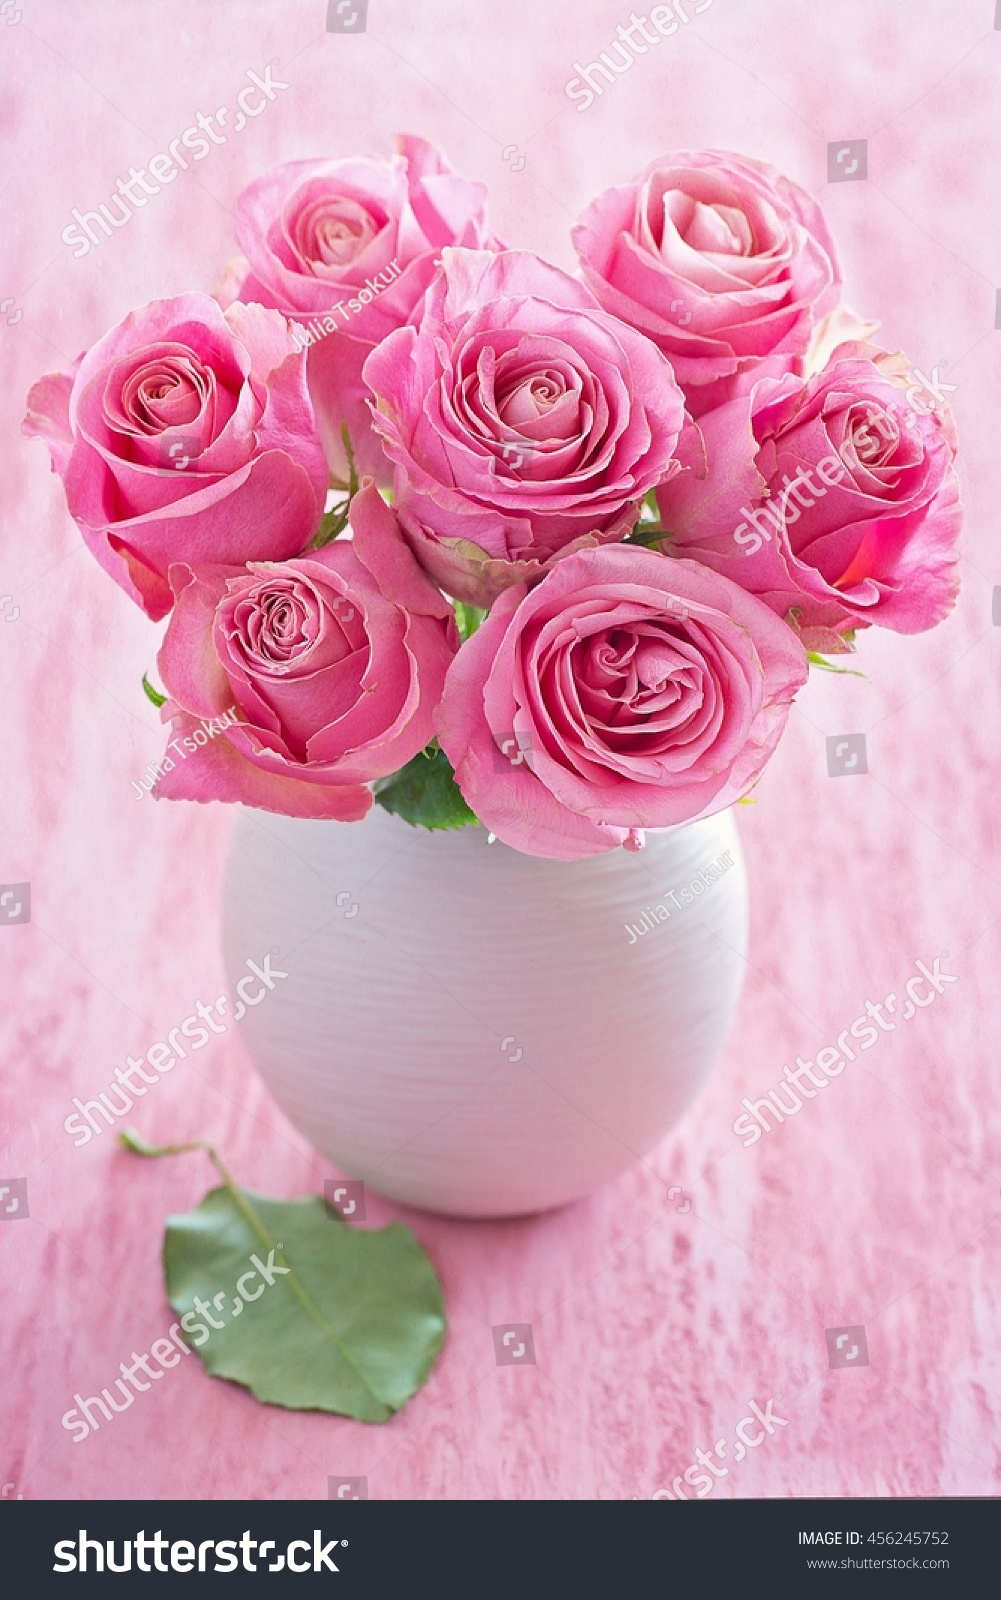 Beautiful Fresh Roses Flowers Vase On Stock Photo Edit Now